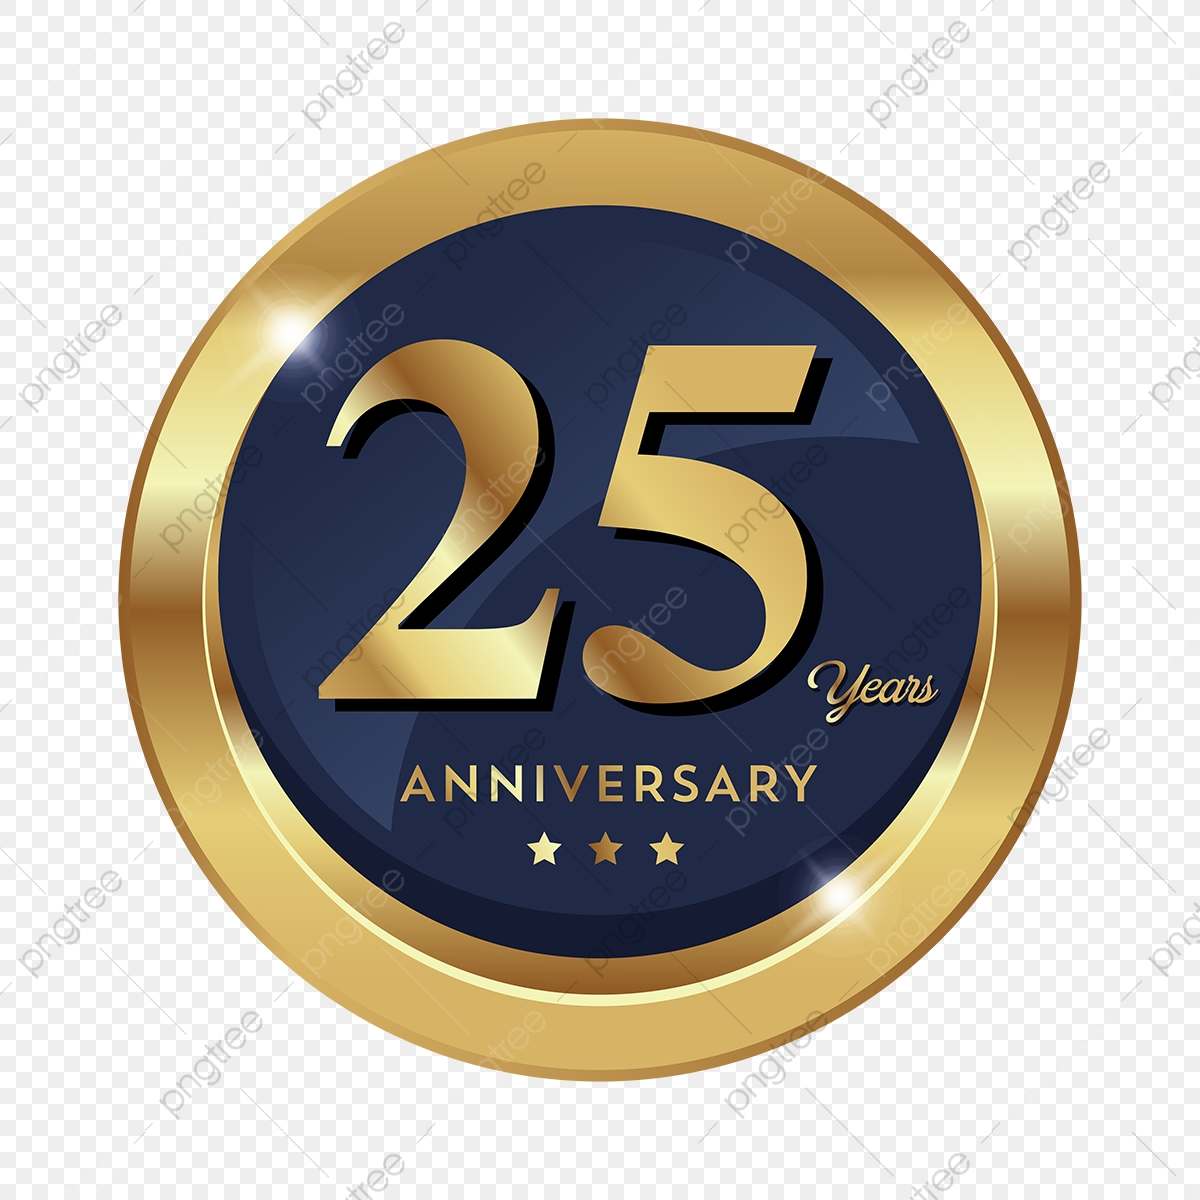 25th anniversary png th anniversary badge logo icon, anniversary,